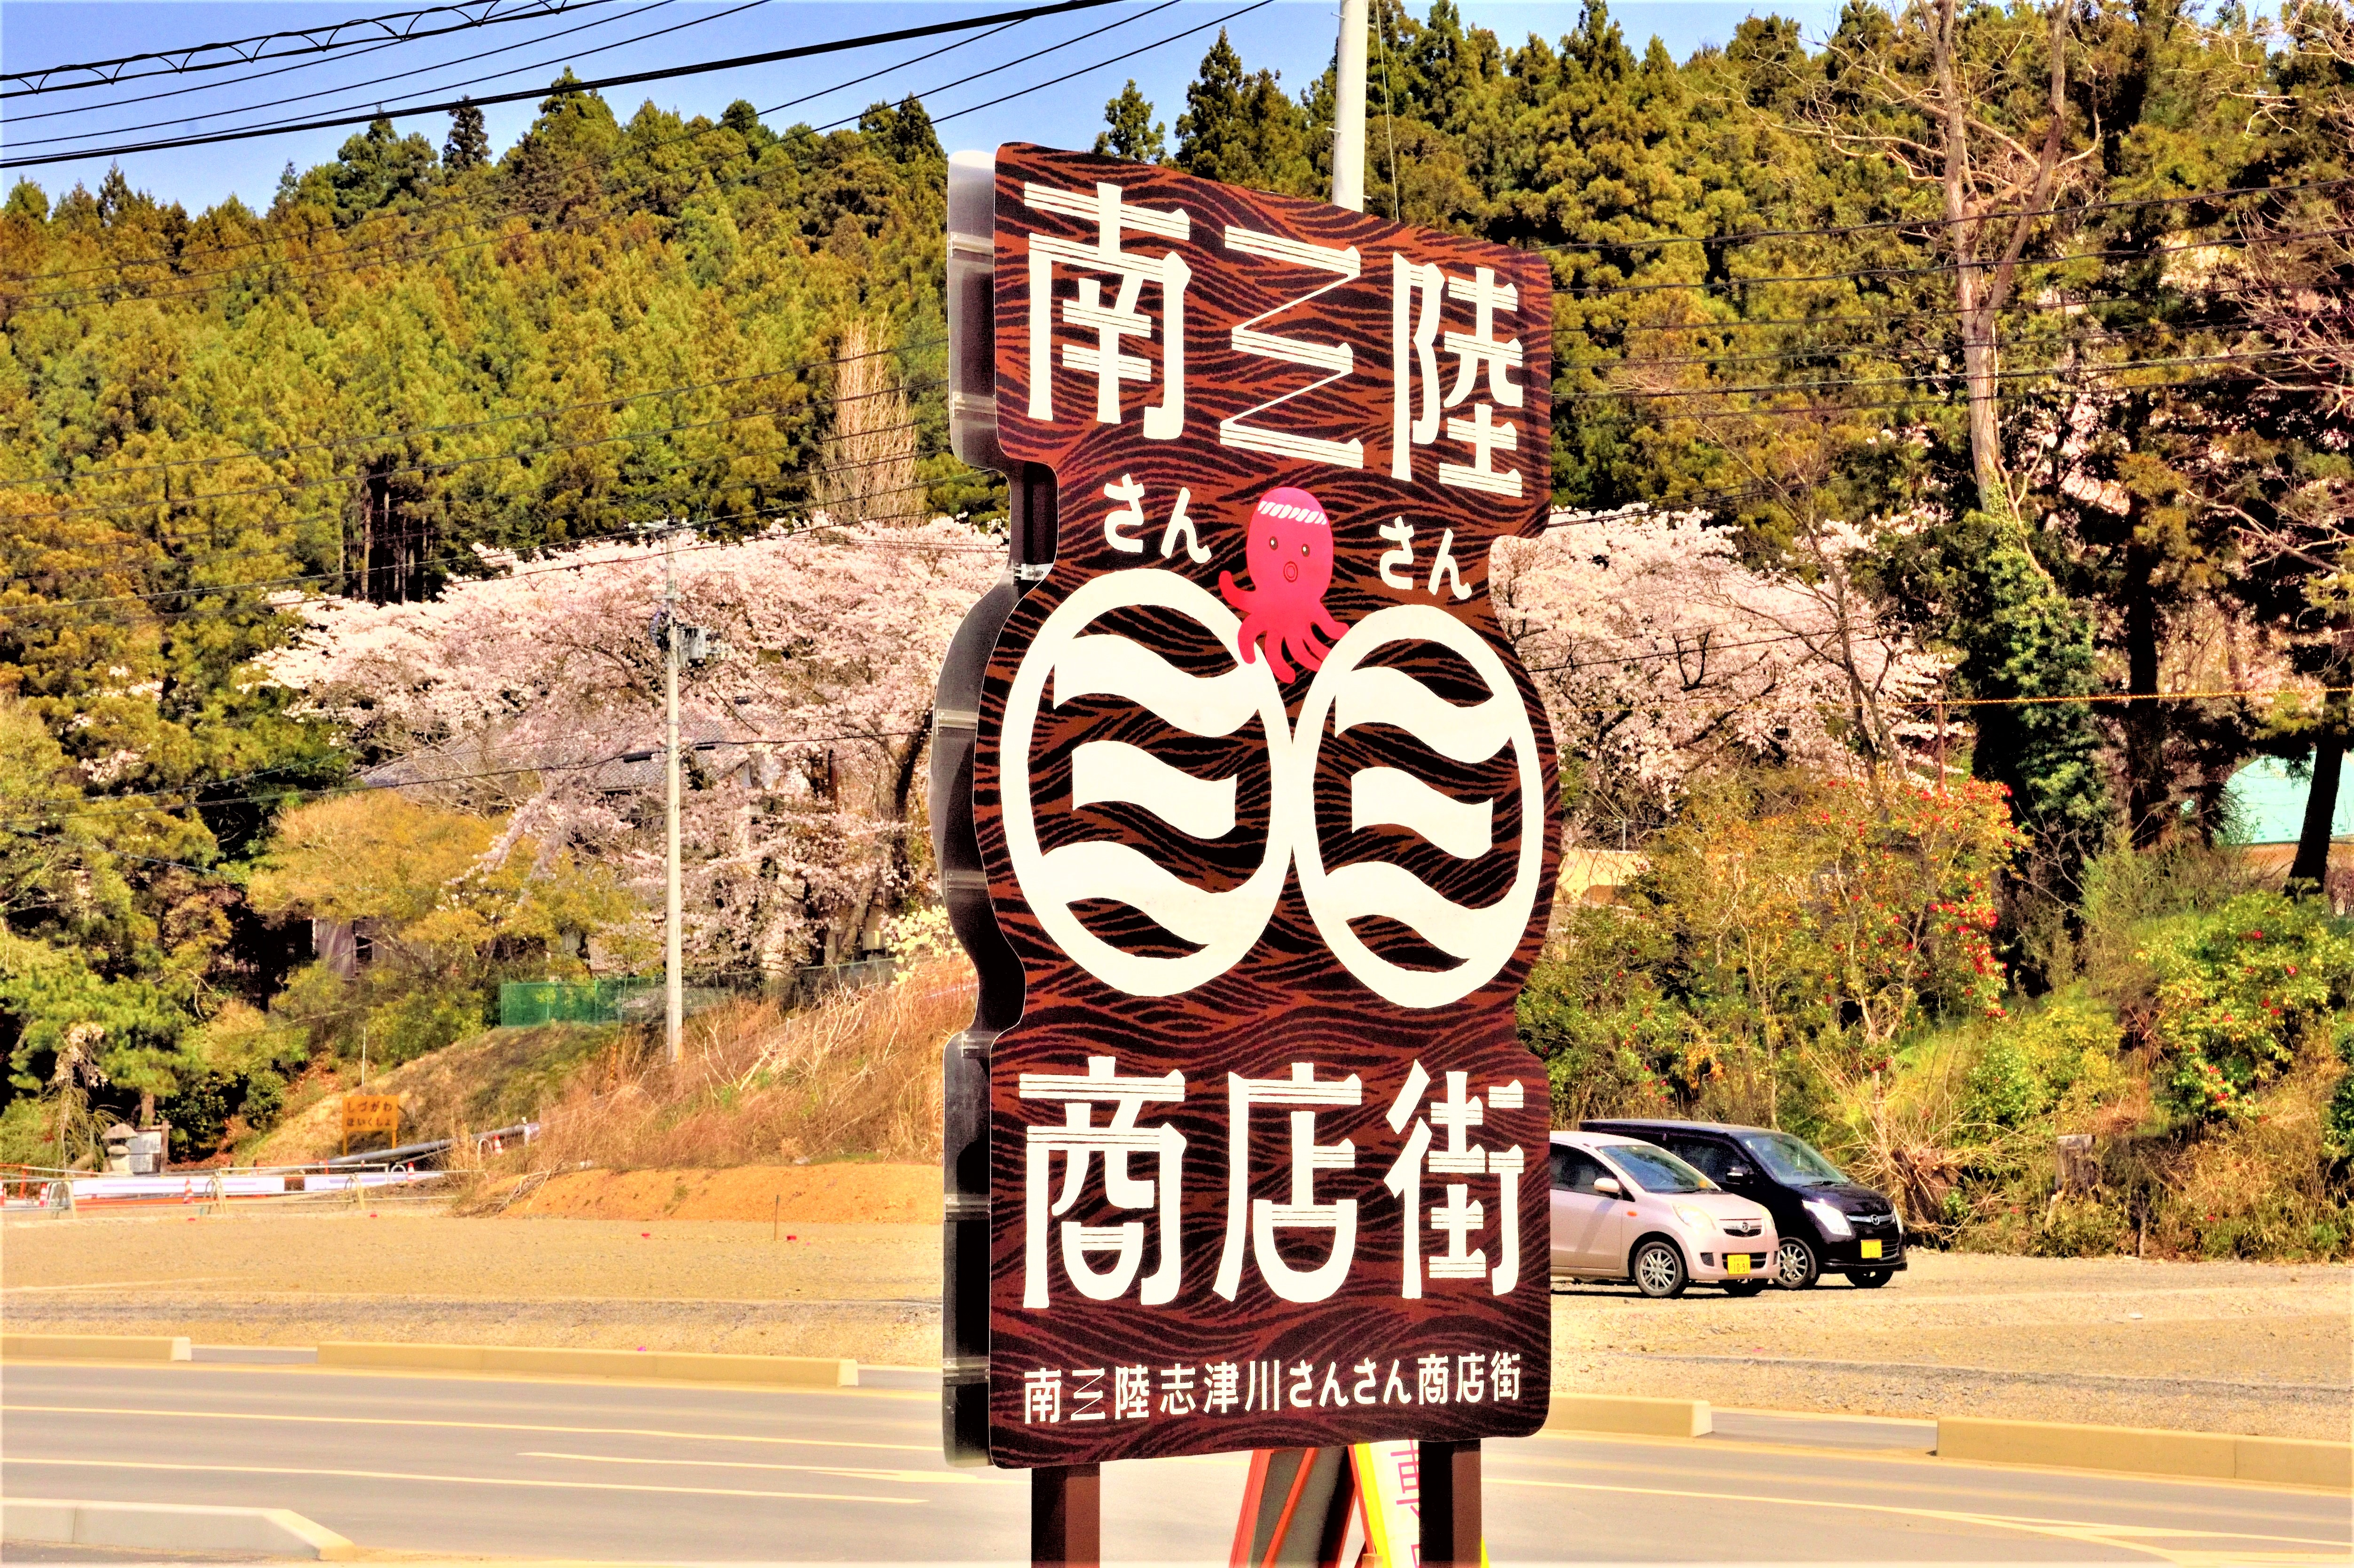 Guide board of Minamisanriku Sun Sun Shopping Village with cherry trees